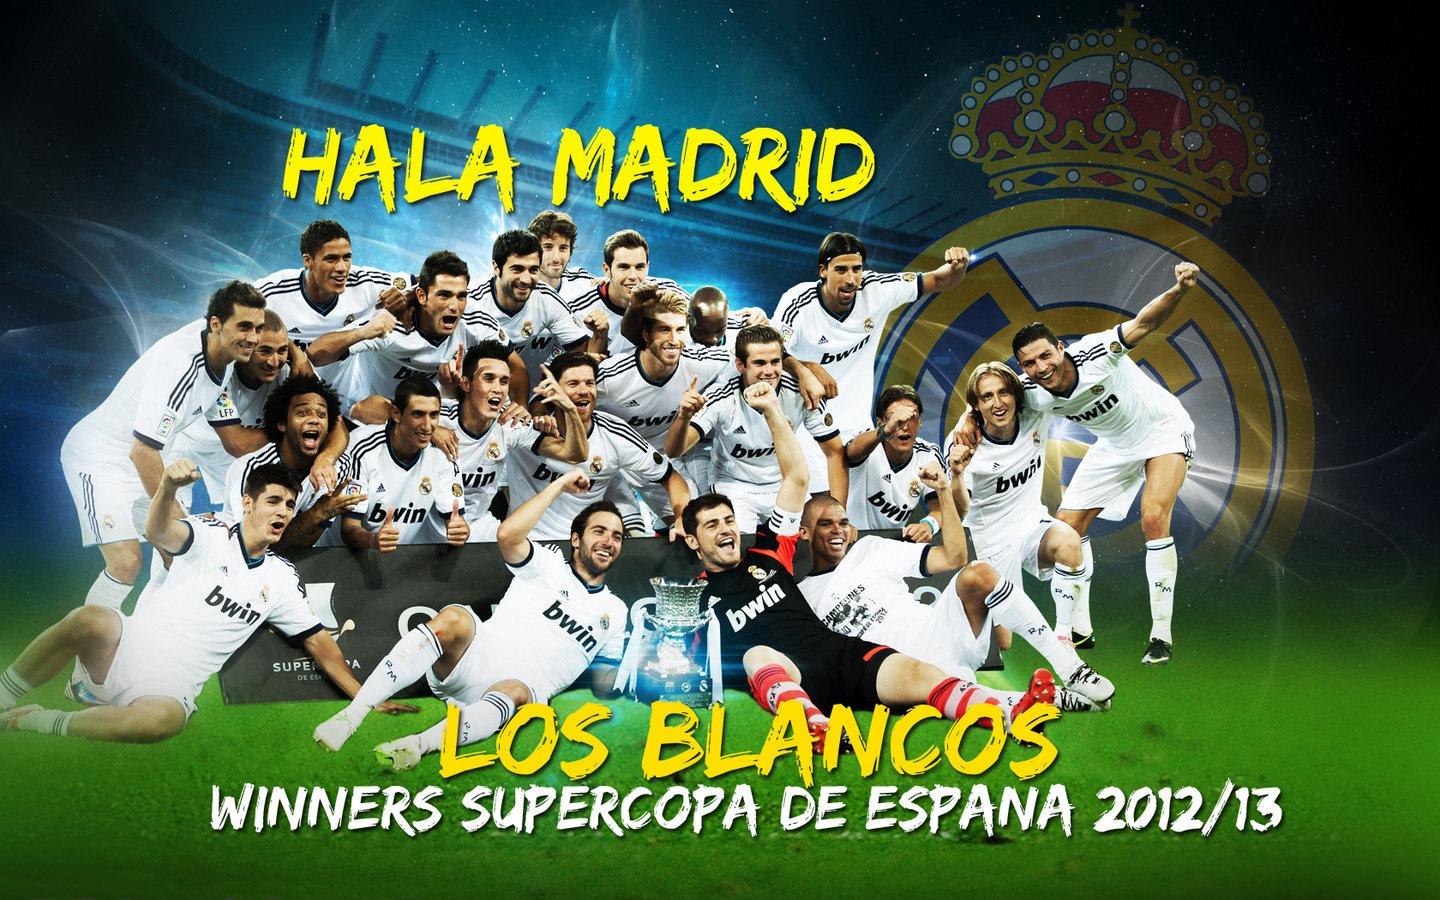 http://4.bp.blogspot.com/-yR8LOItZIY8/UNmcodCmXWI/AAAAAAAAL3I/j5YFtktyEoA/s1600/Real-Madrid-team-wallpapers-+07.jpg